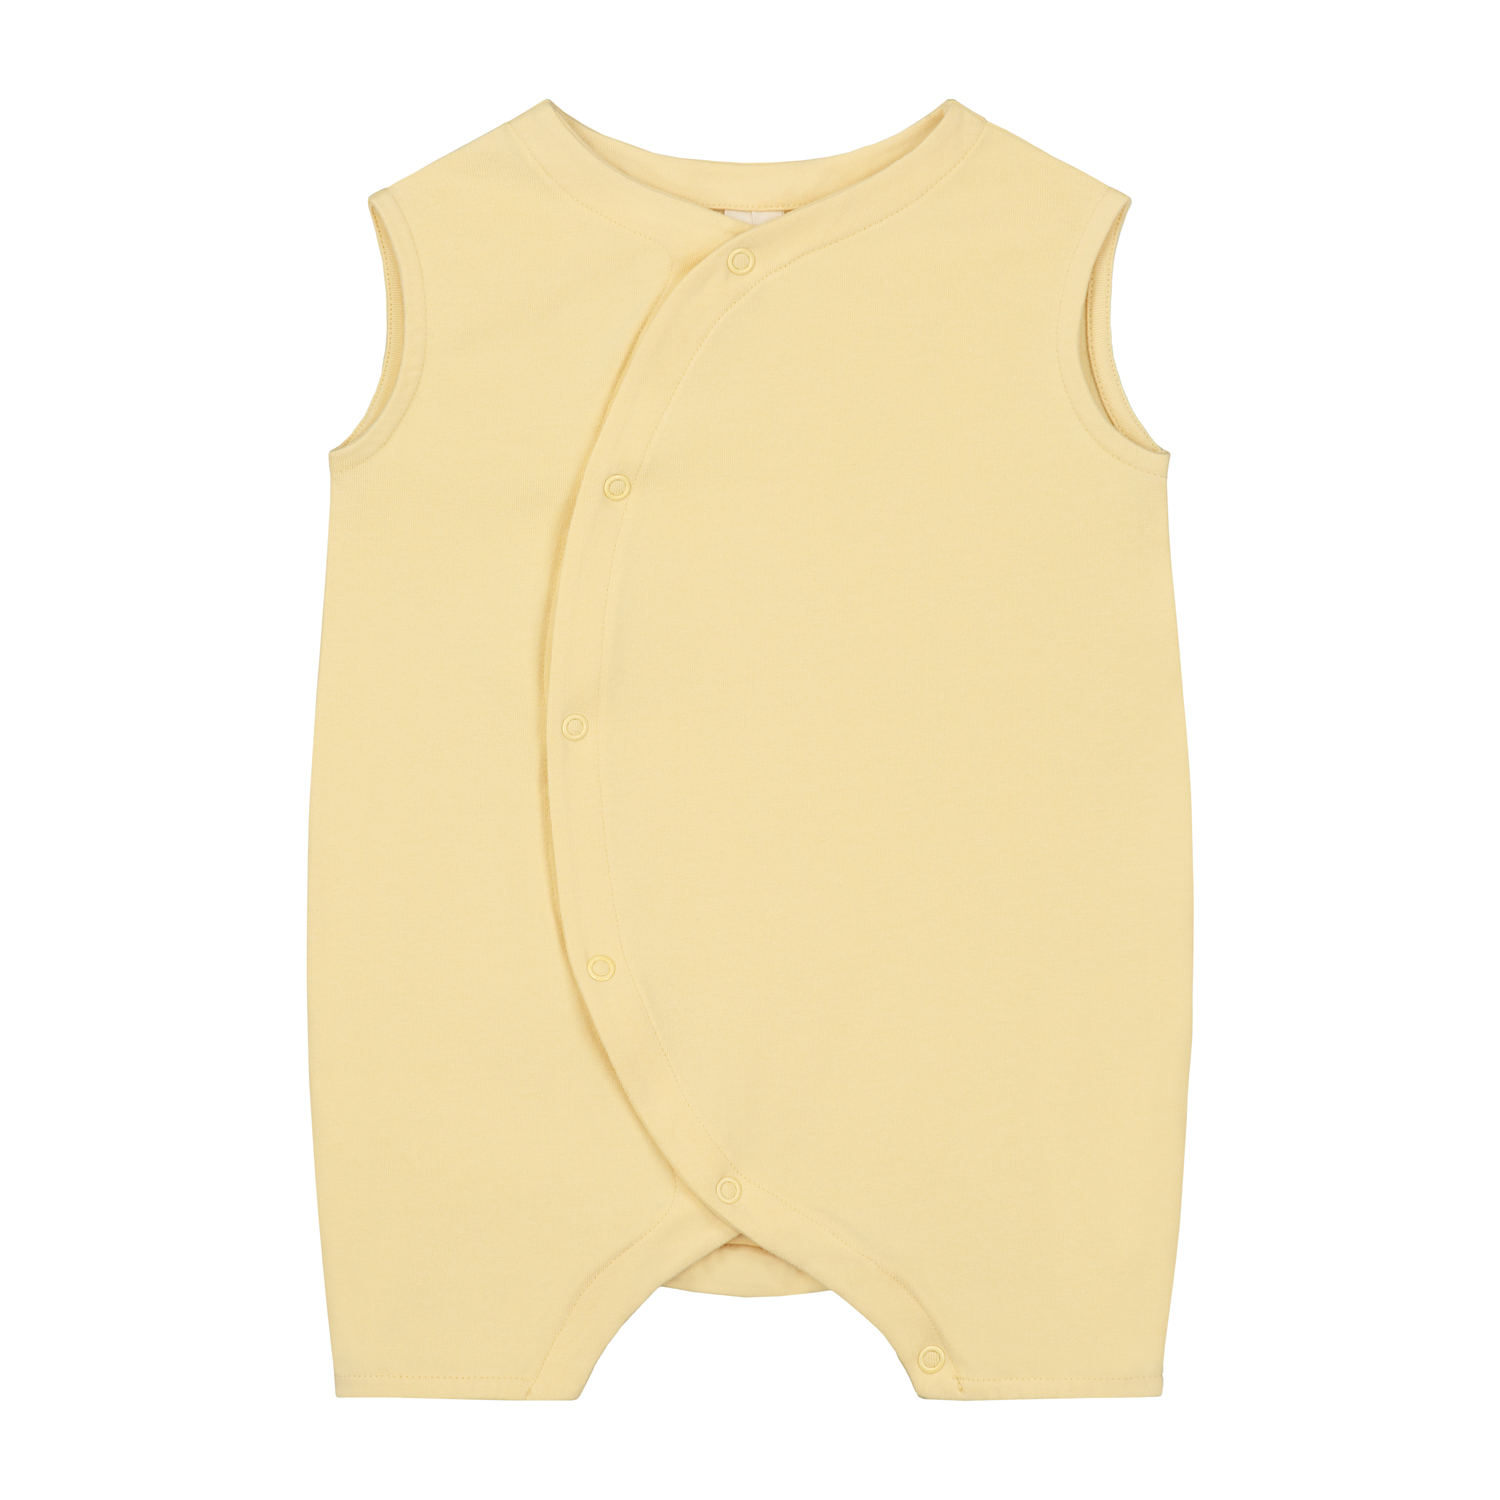 gray label baby grow with snaps mellow yellow